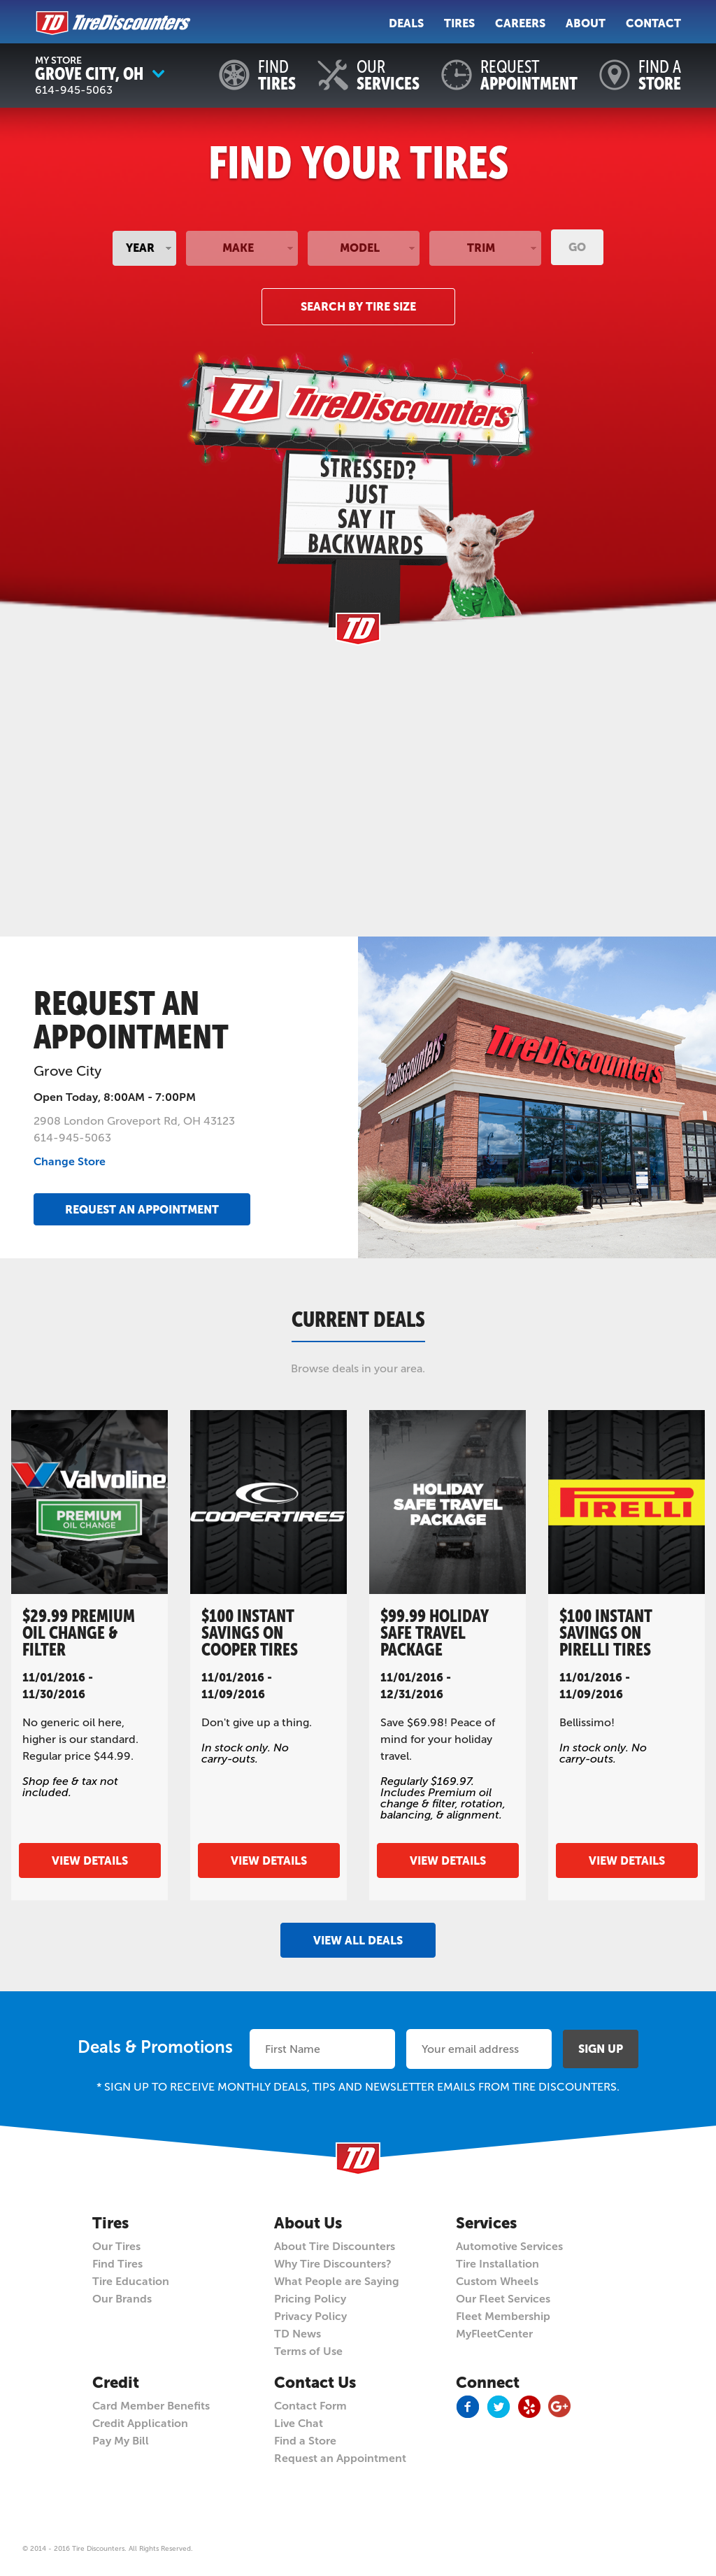 Tire Discounters Coupons >> Tirediscounters Competitors Revenue And Employees Owler